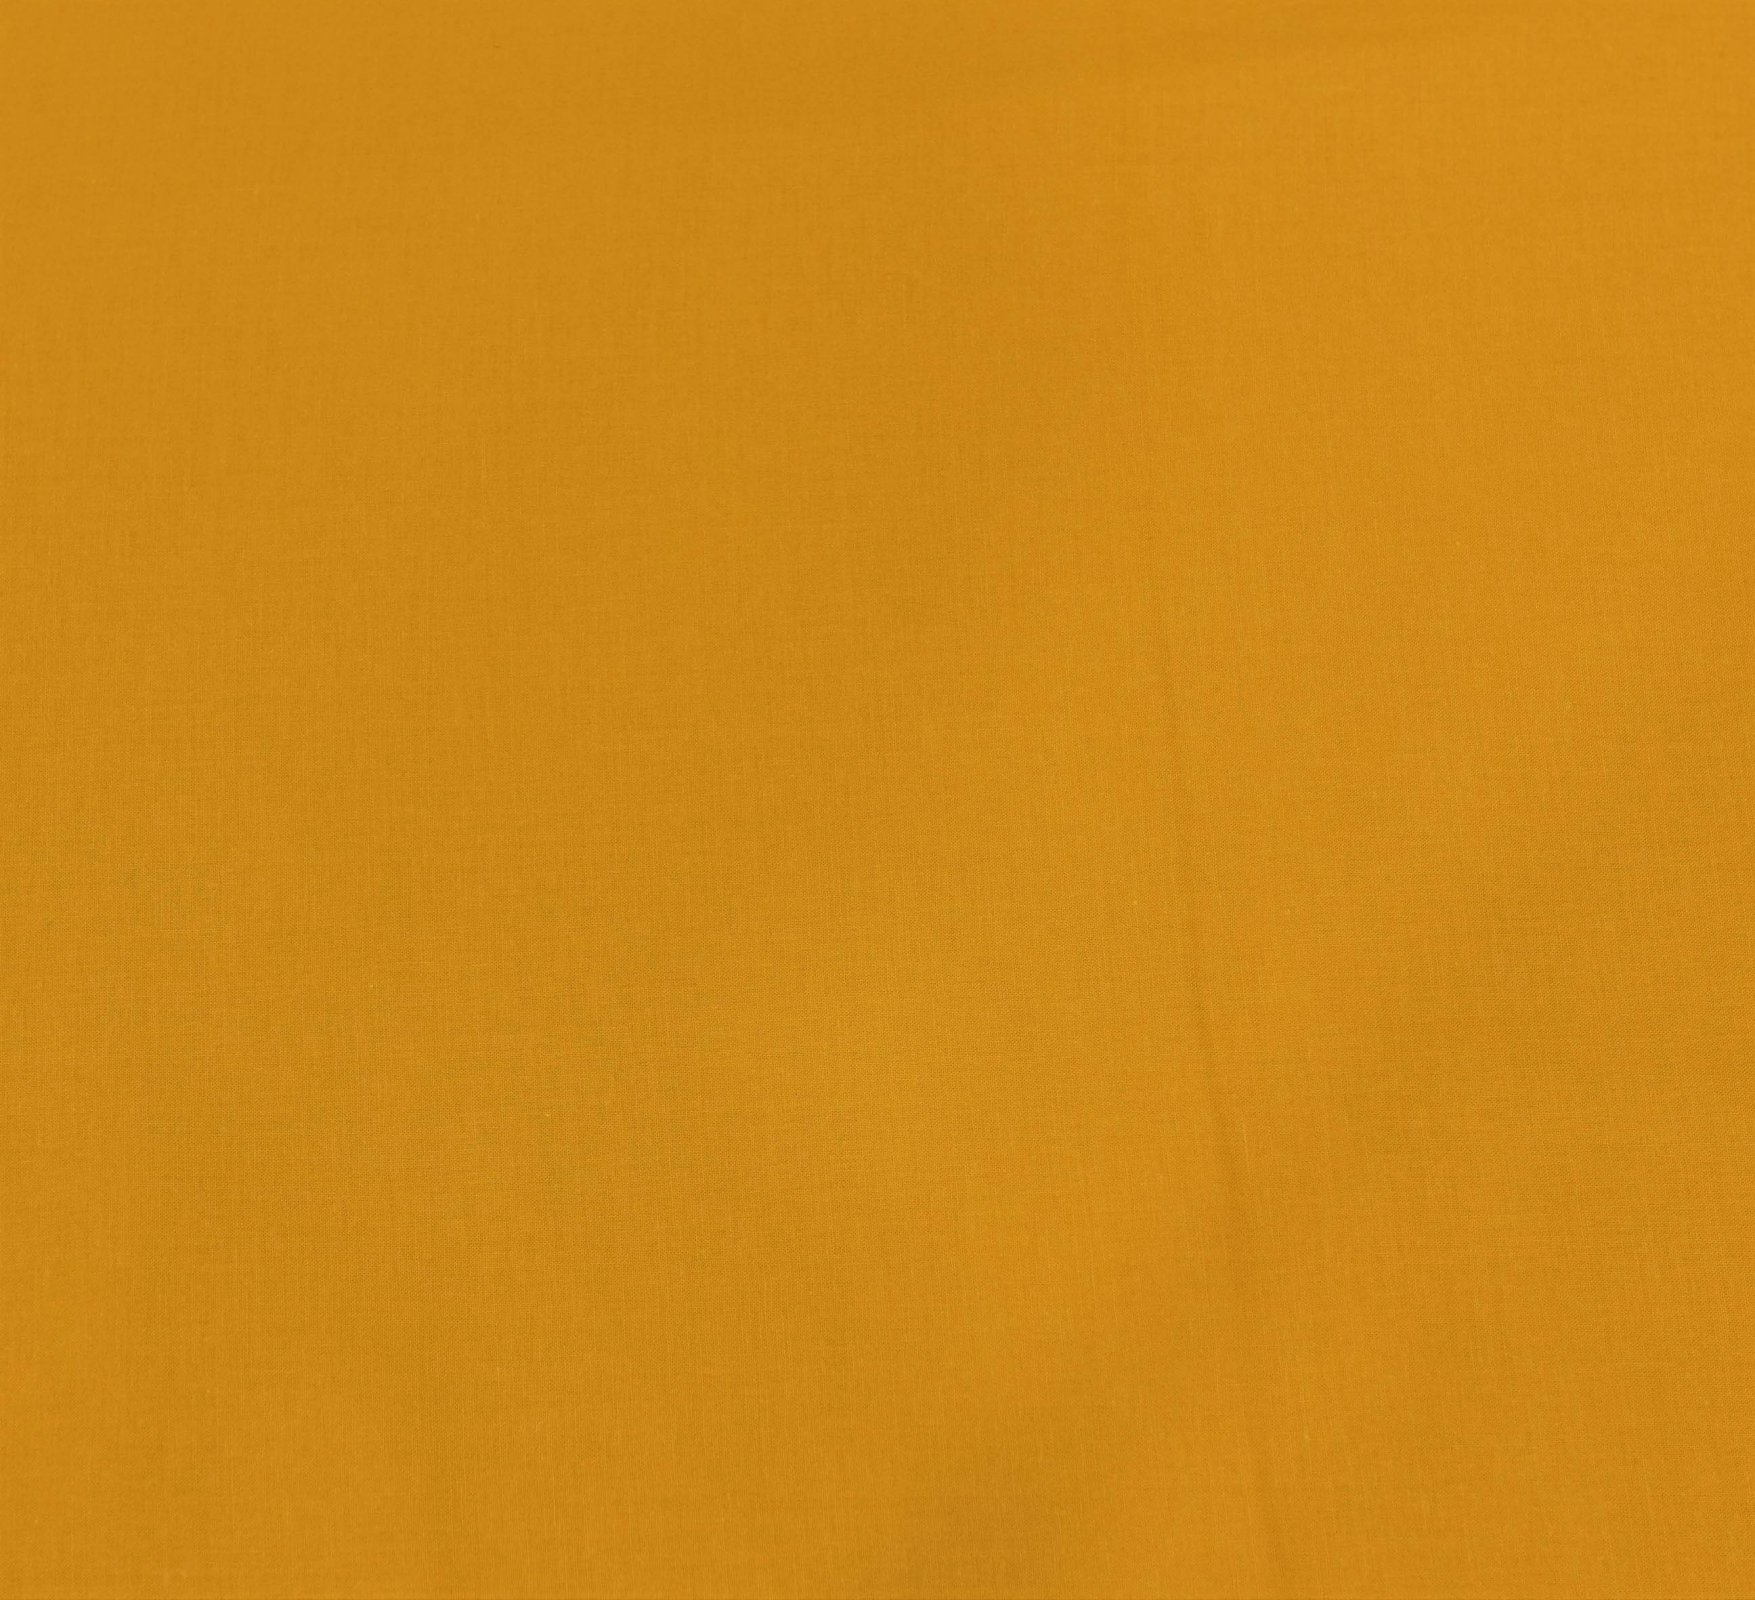 Japanese Fabric - Solid Collection - Turmeric